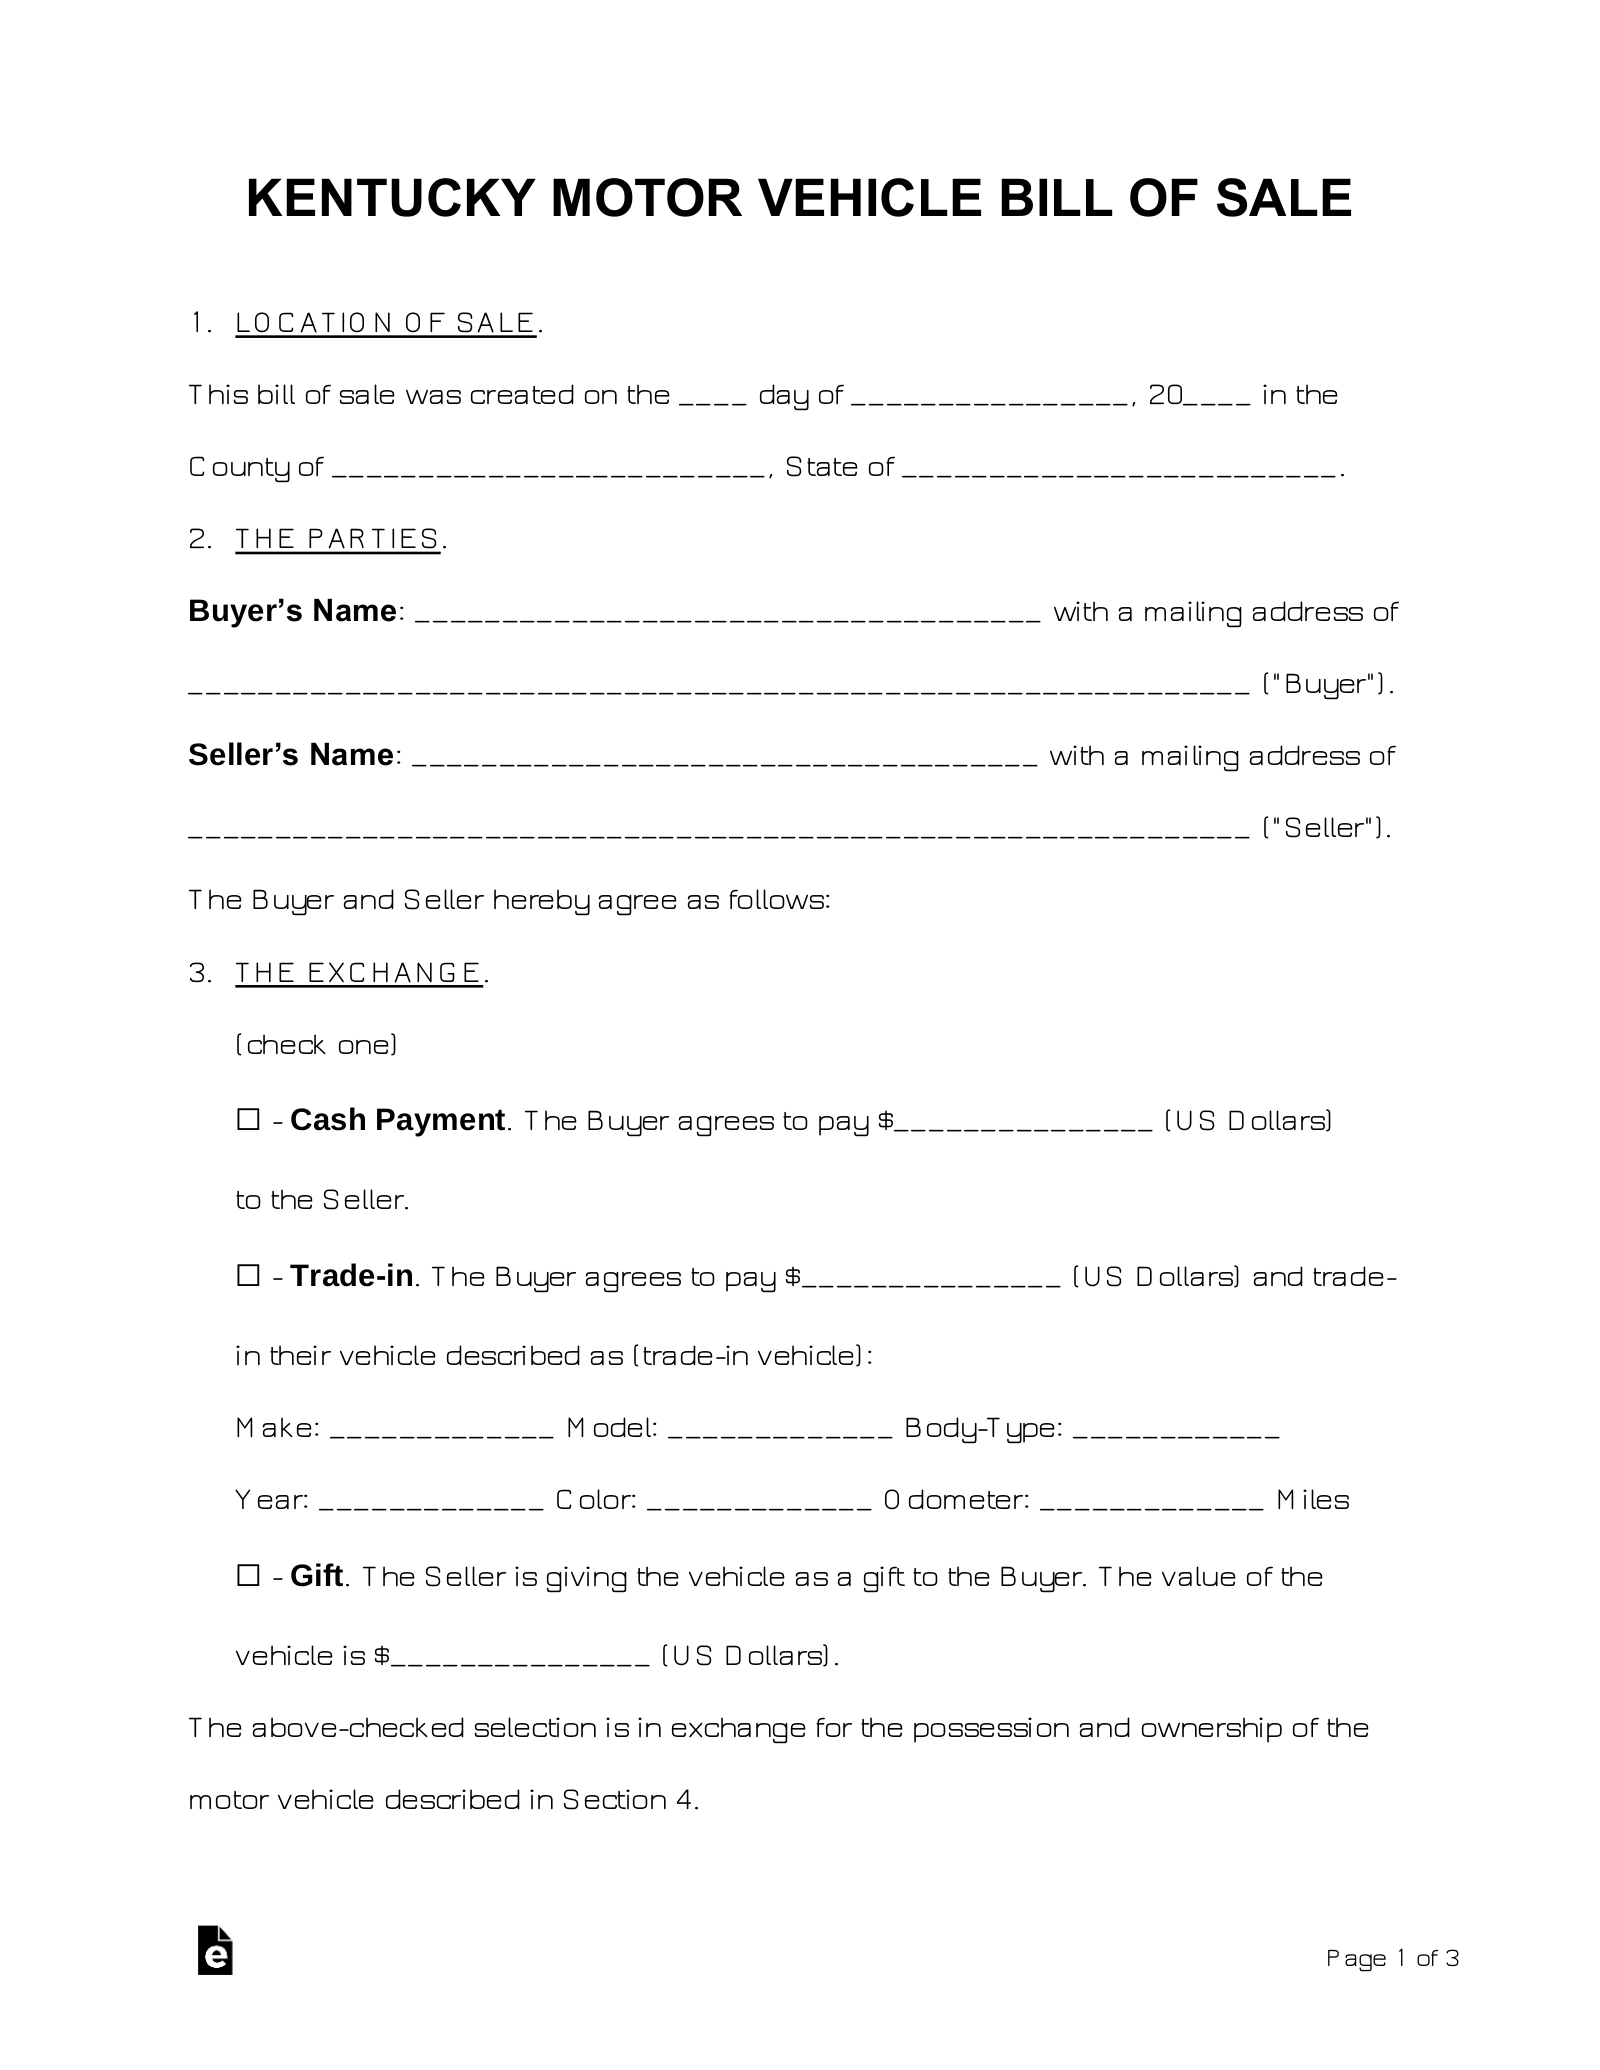 Auto Bill Of Sale Template >> Free Kentucky Bill Of Sale Forms Word Pdf Eforms